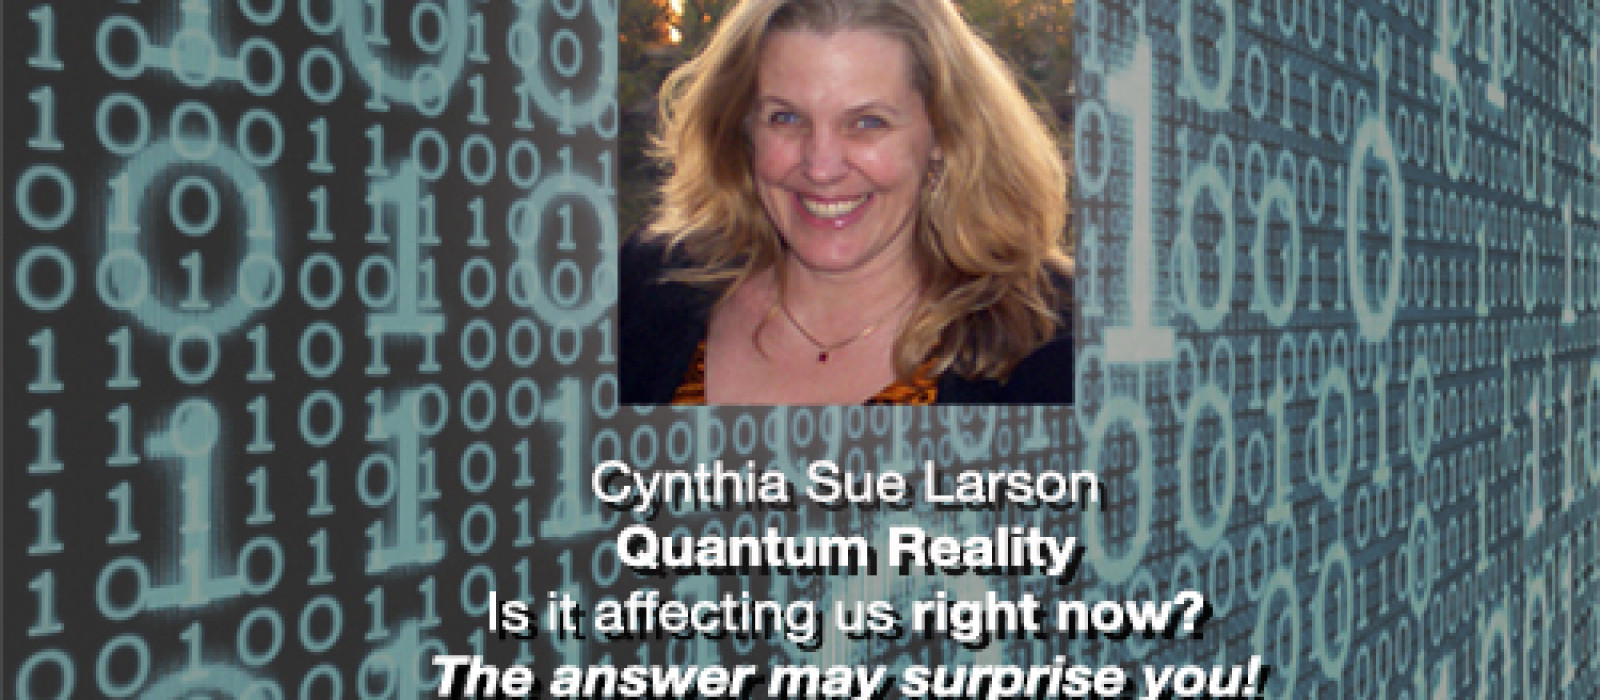 Quantum Reality and How it's Affecting Us Right Now with Cynthia Sue Larson